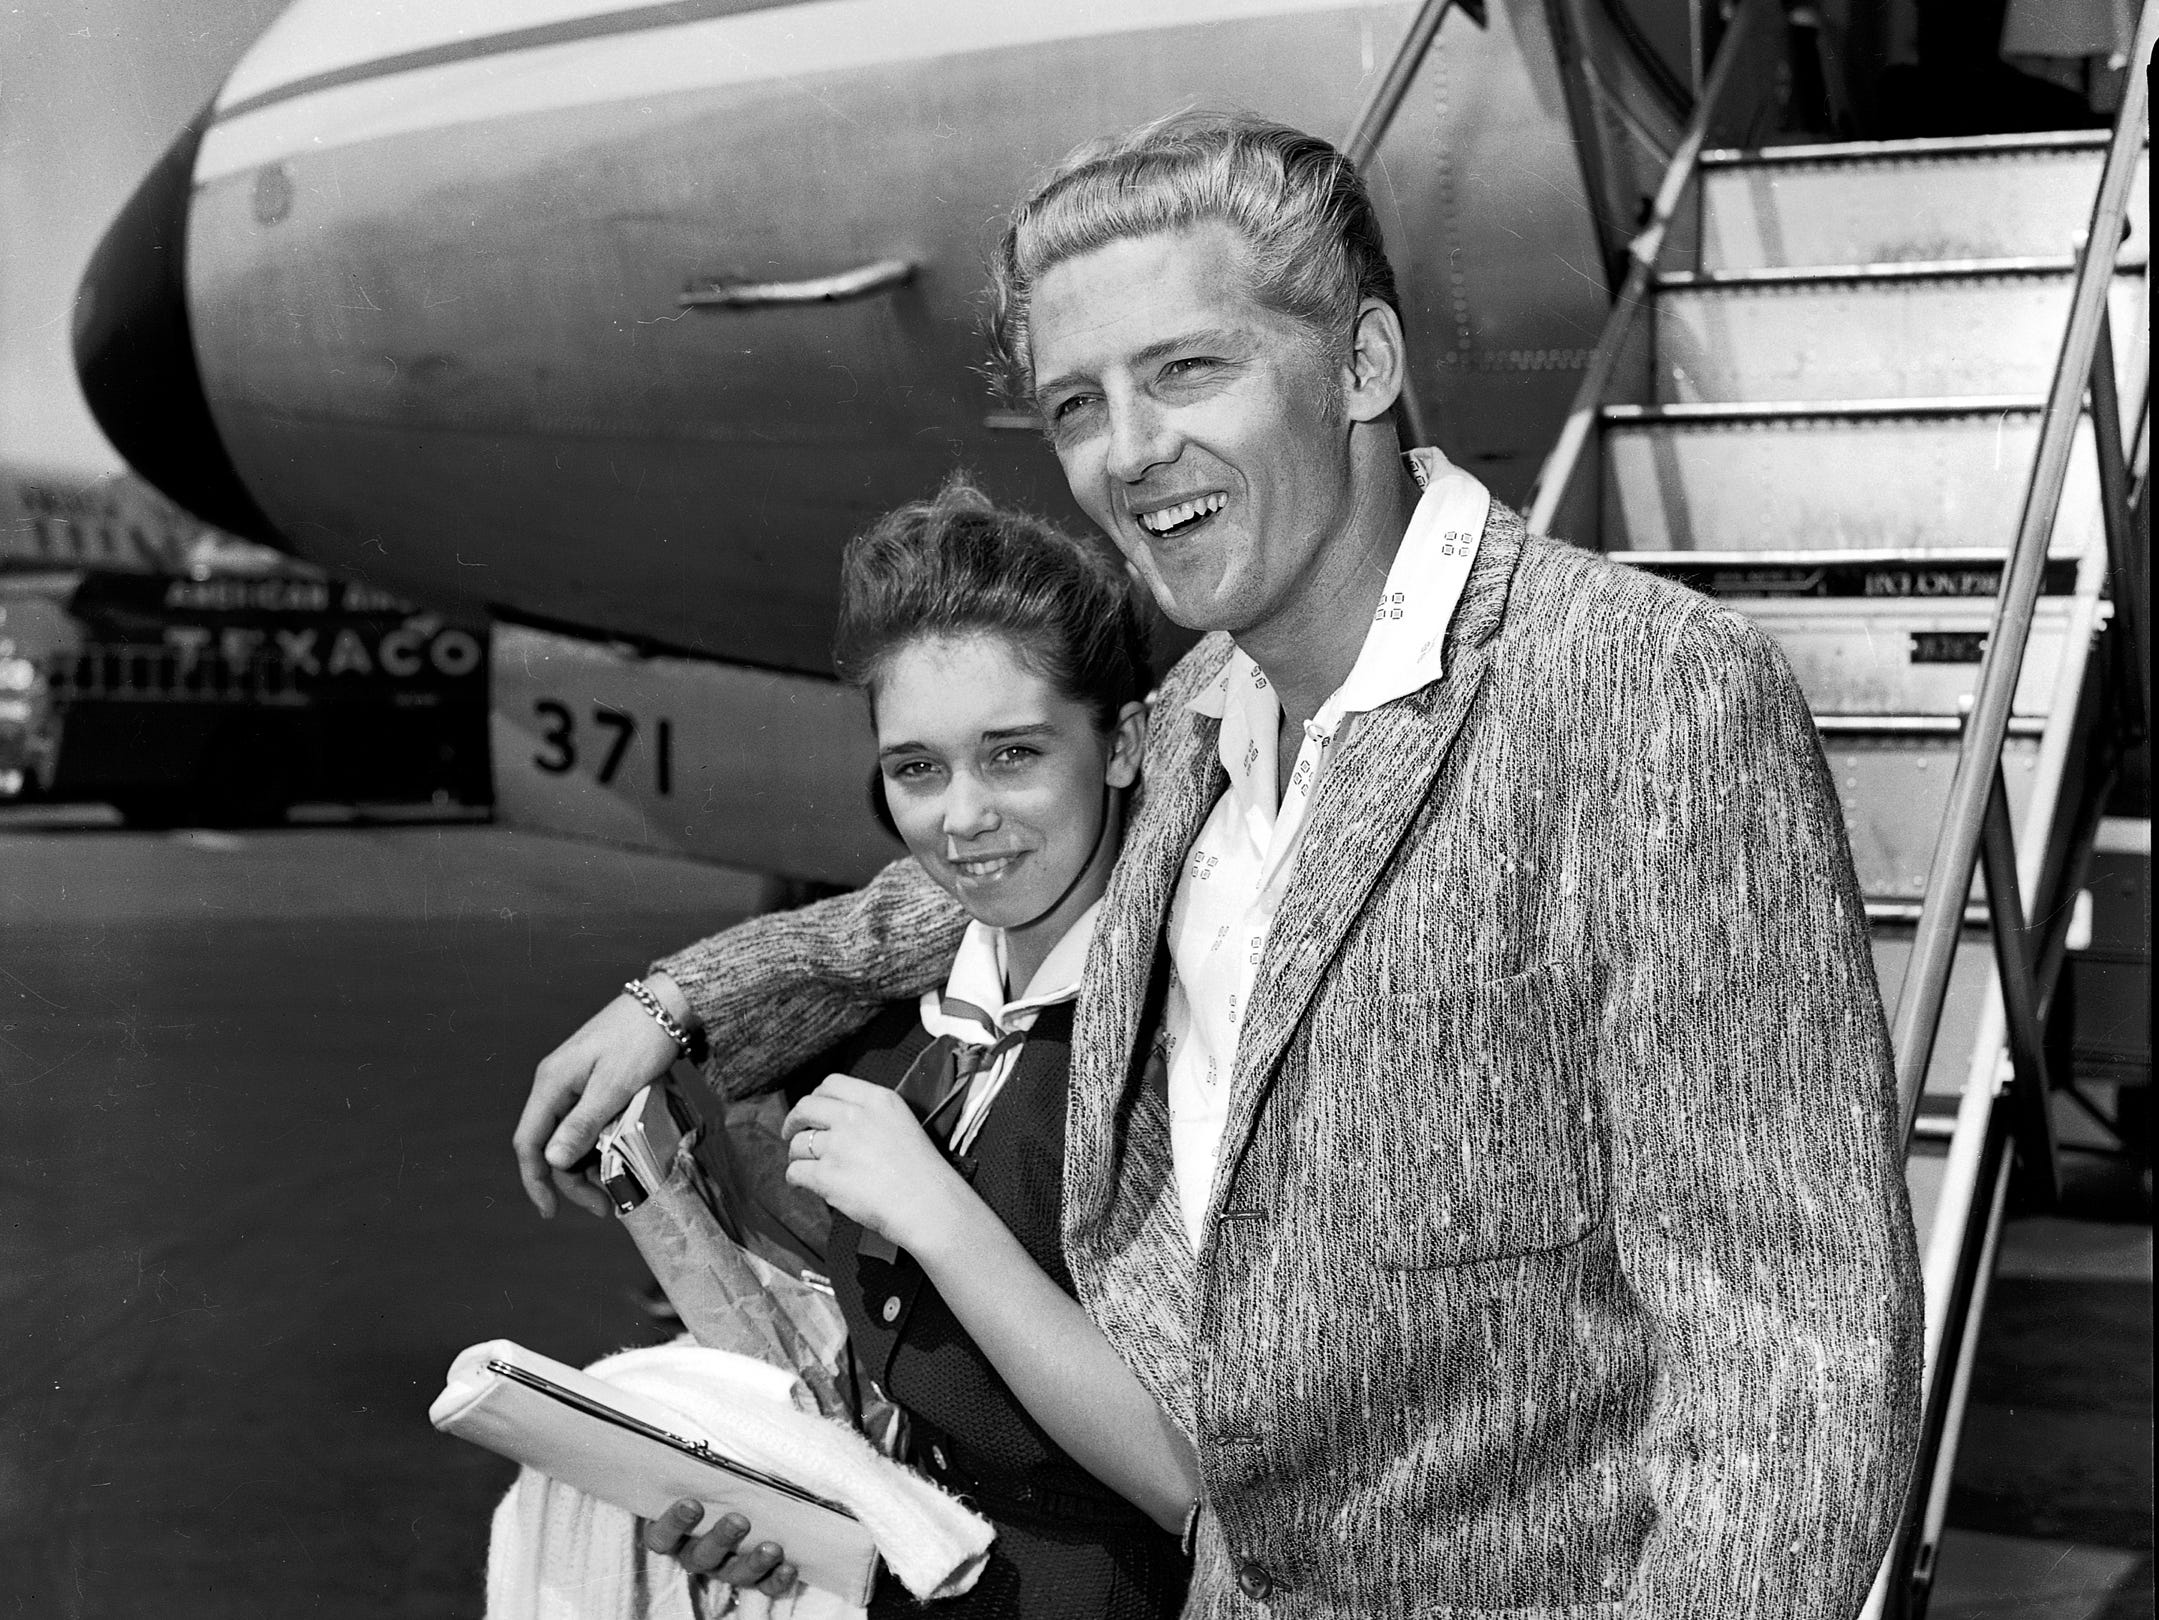 May 27, 1958 - Jerry Lee Lewis and wife Myra return from a rough stay in London on May 27, 1958.  The beleaguered Lewis arrived home tired and confused about the trouble caused by the revelation of his five-month marriage to London reporters. The rock and roll singer and his 13-year-old bride went to their home at 4752 Dianne to rest from their long trip to London. (Lloyd Dinkins/The Commercial Appeal files)